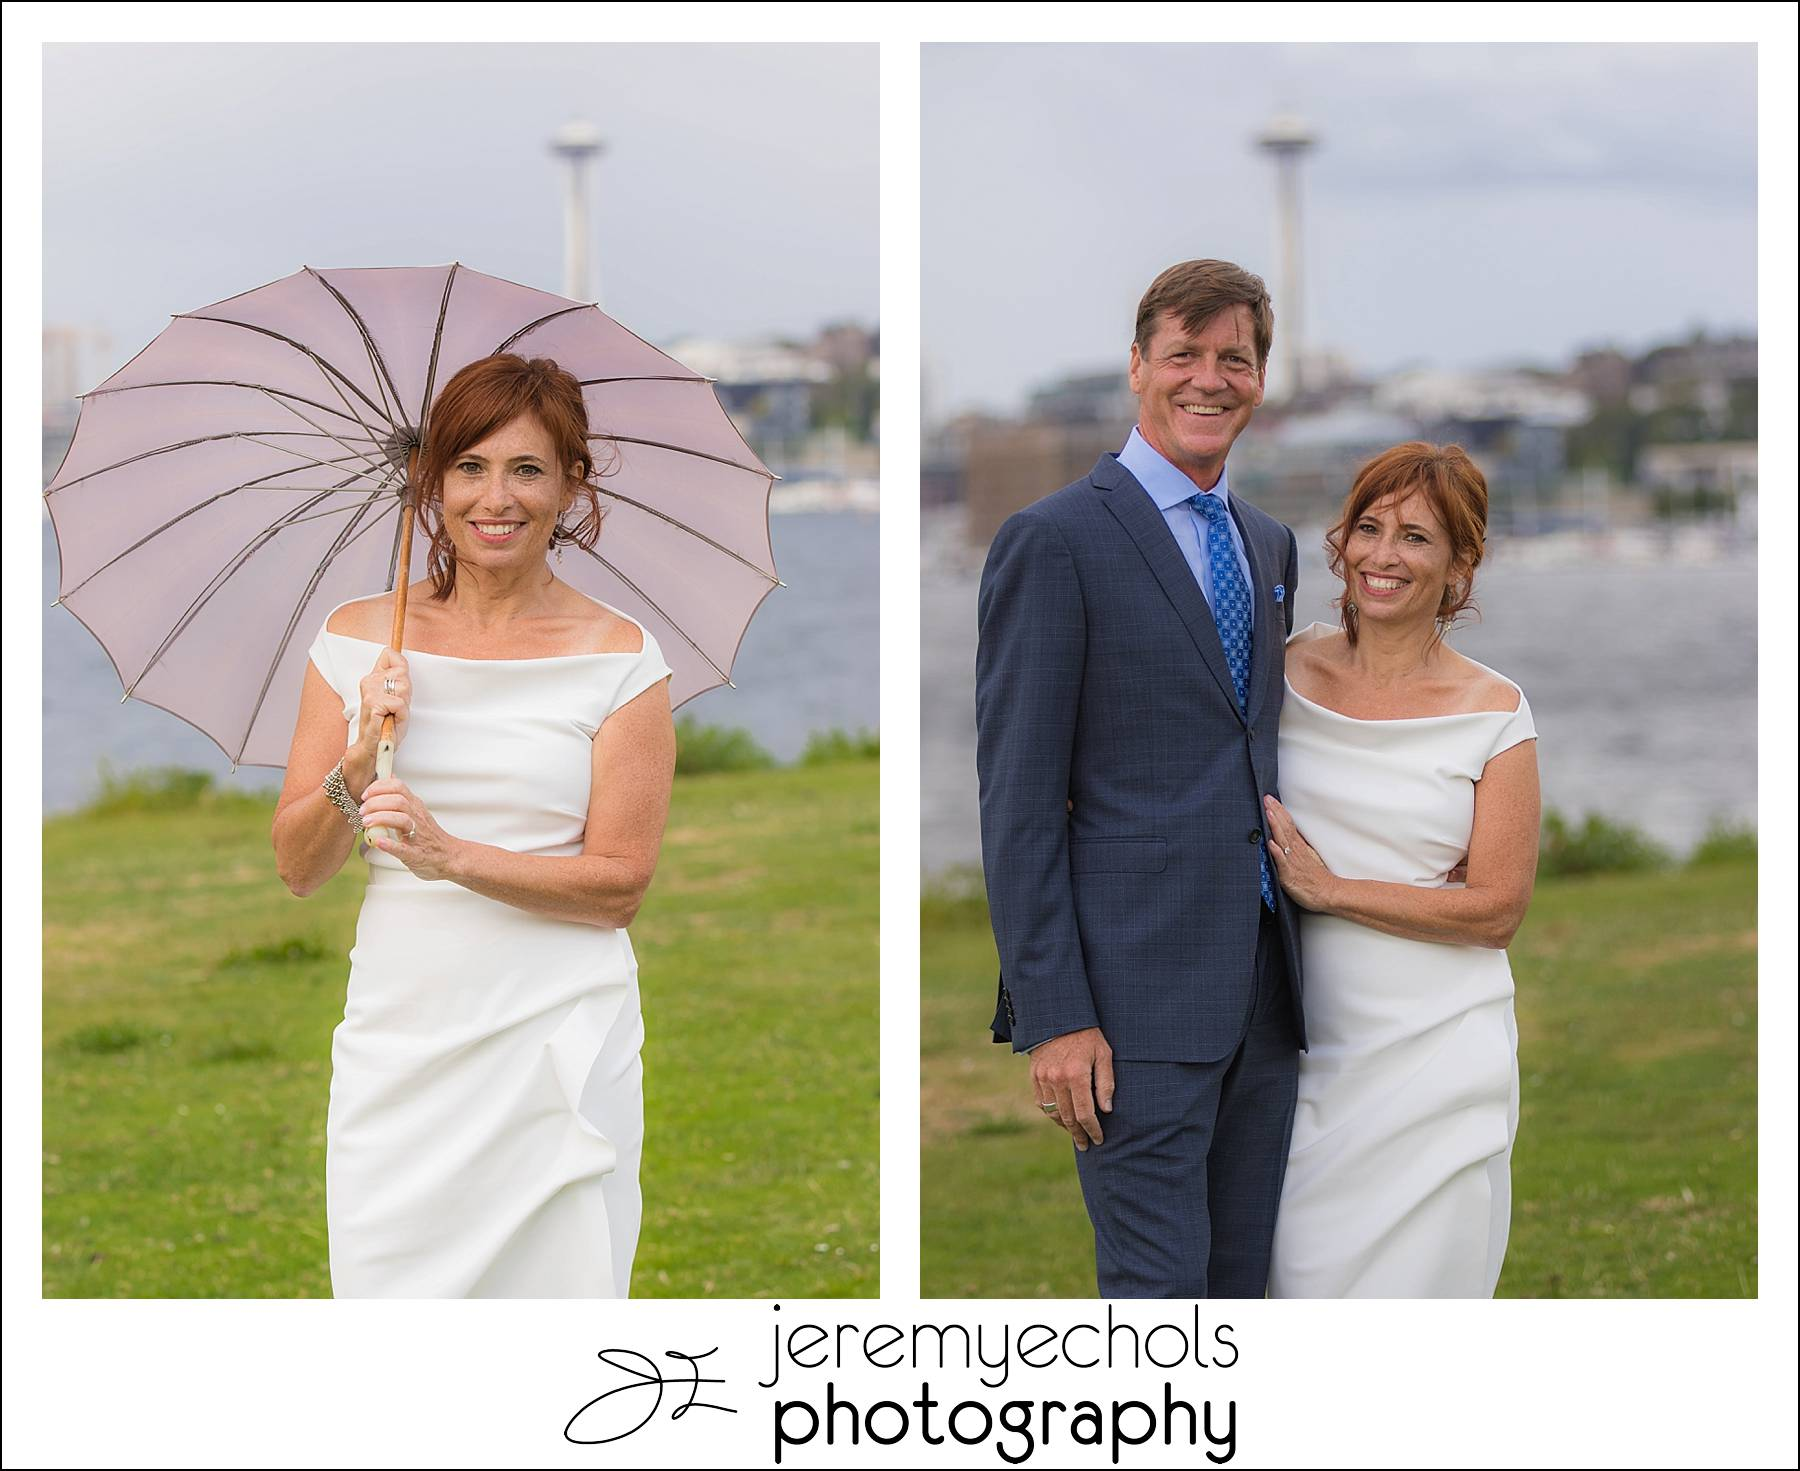 Dan-Marjorie-Seattle-Wedding-231_WEB.jpg